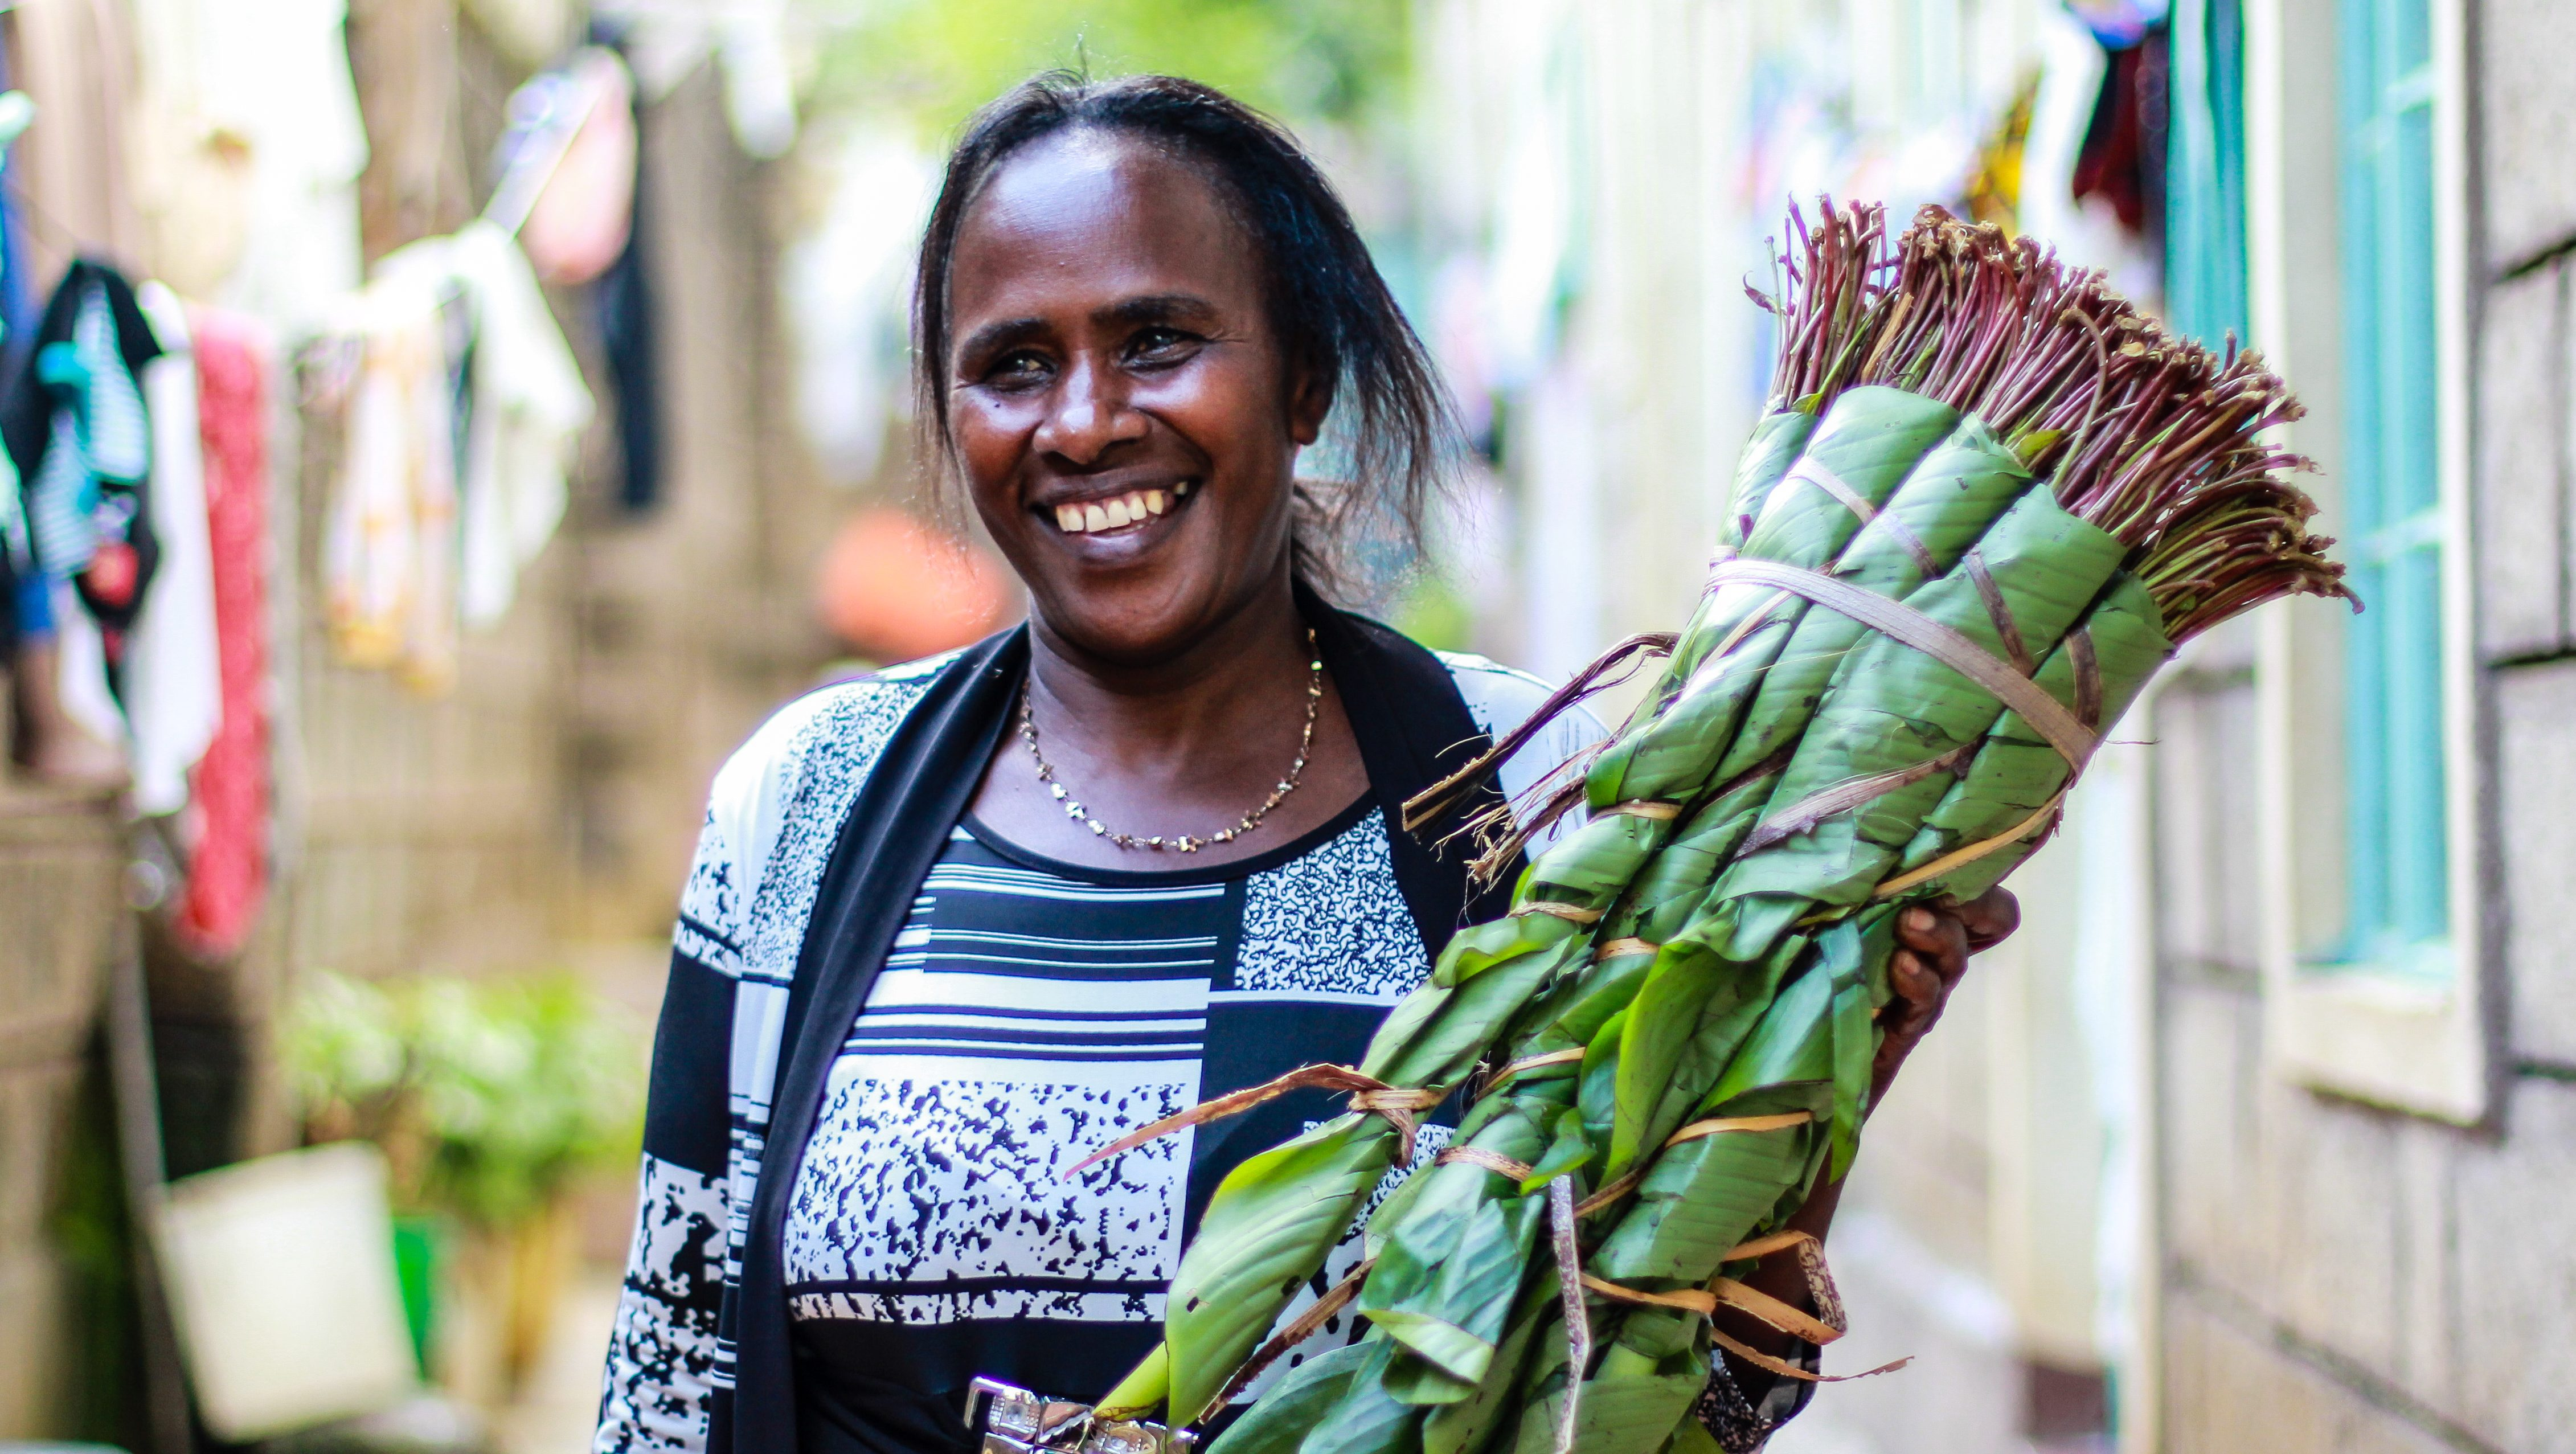 Khat, East Africa's stimulant leaf, is a global business